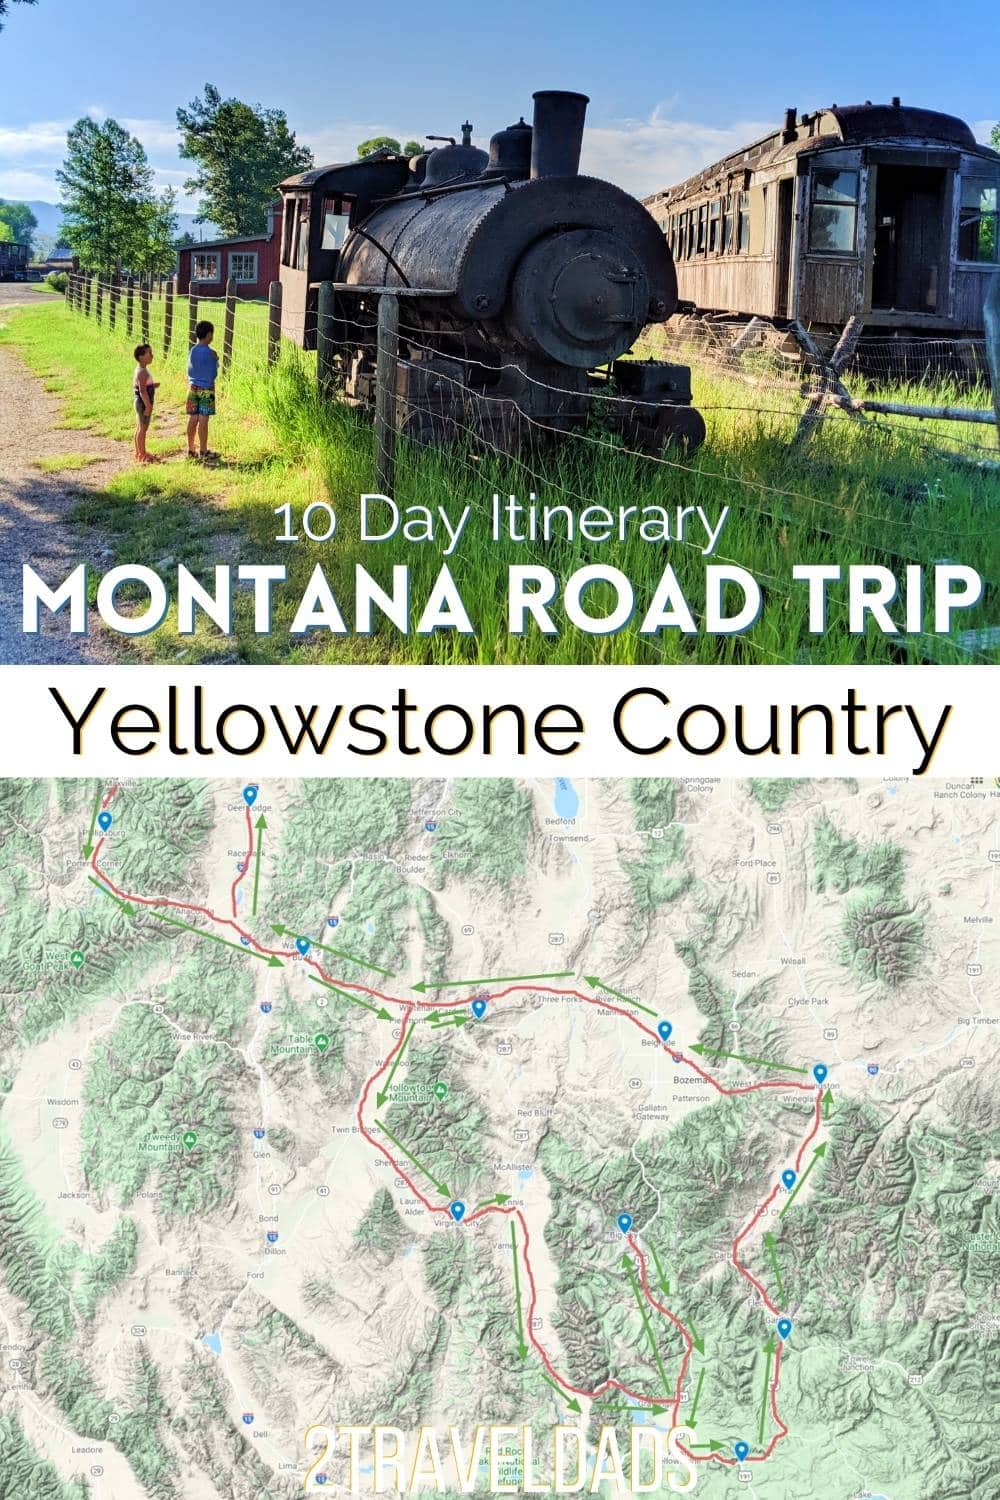 Montana road trip itinerary for 5 or 10 days of western towns and Yellowstone country. This adventure road trip includes national parks, antique stops, and Montana attractions.